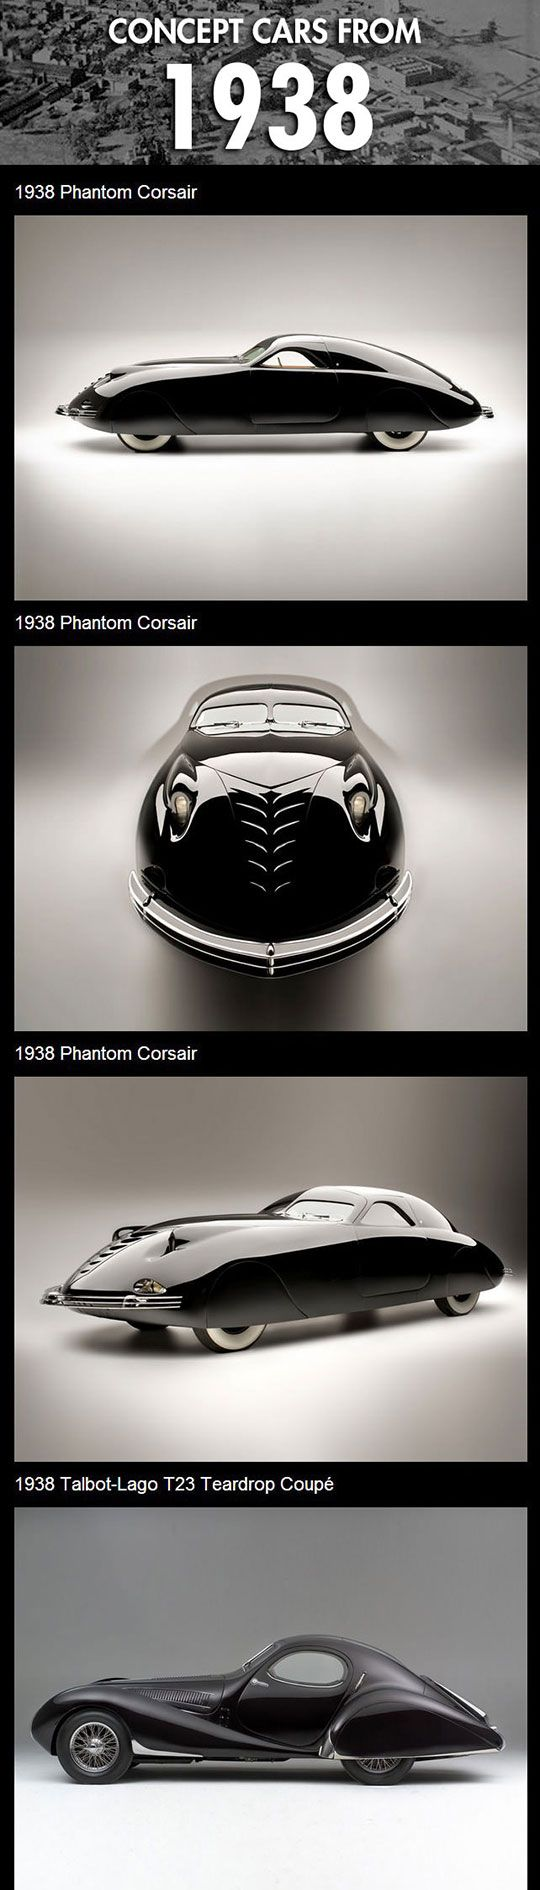 Concept cars from 1938… this, right here, is style.